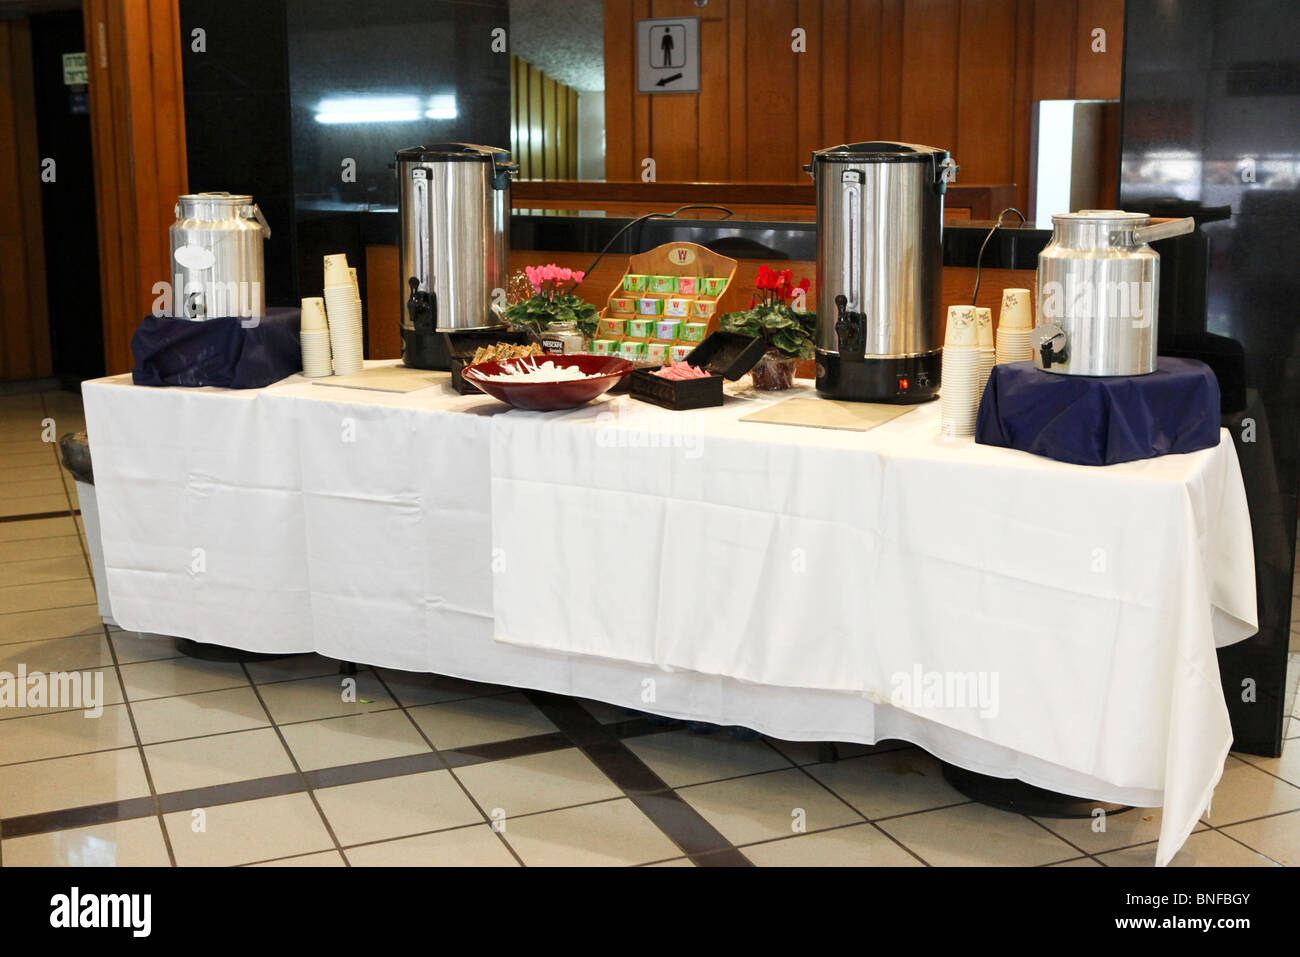 Merveilleux Tea And Coffee Self Service Buffet Table